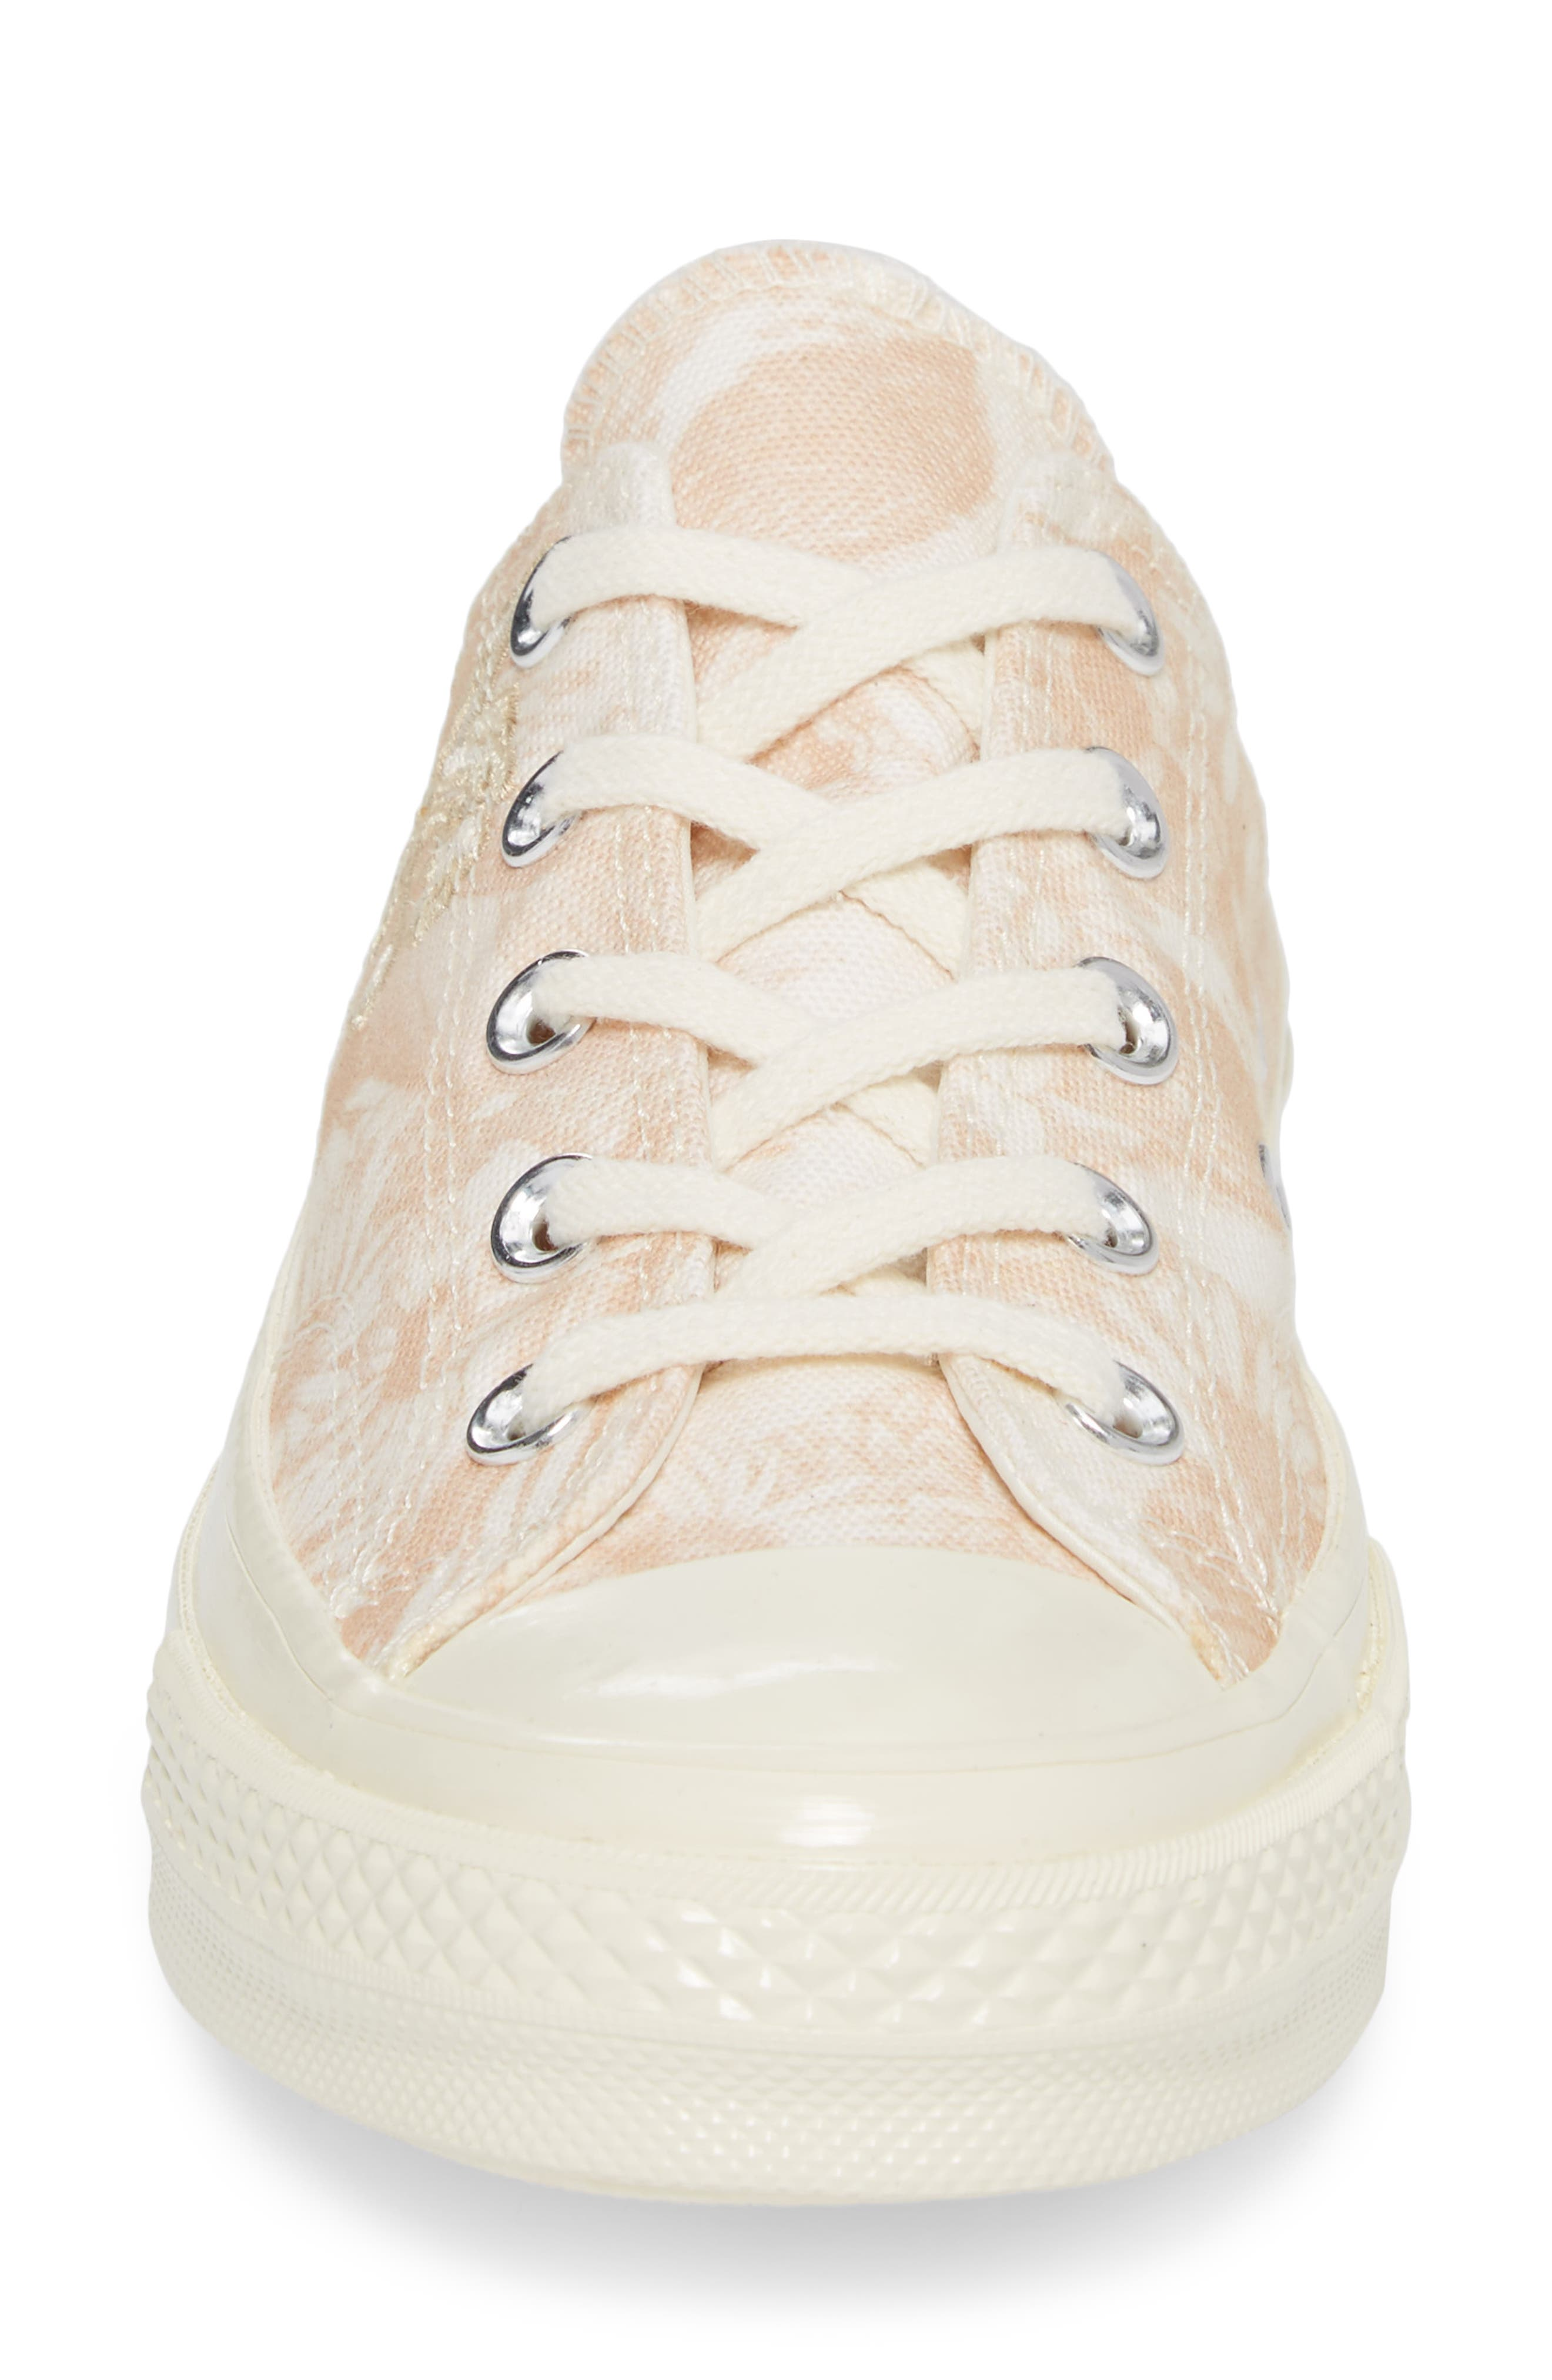 Chuck Taylor<sup>®</sup> All Star<sup>®</sup> 70 Spring Forward Sneaker,                             Alternate thumbnail 4, color,                             Egret/ Egret